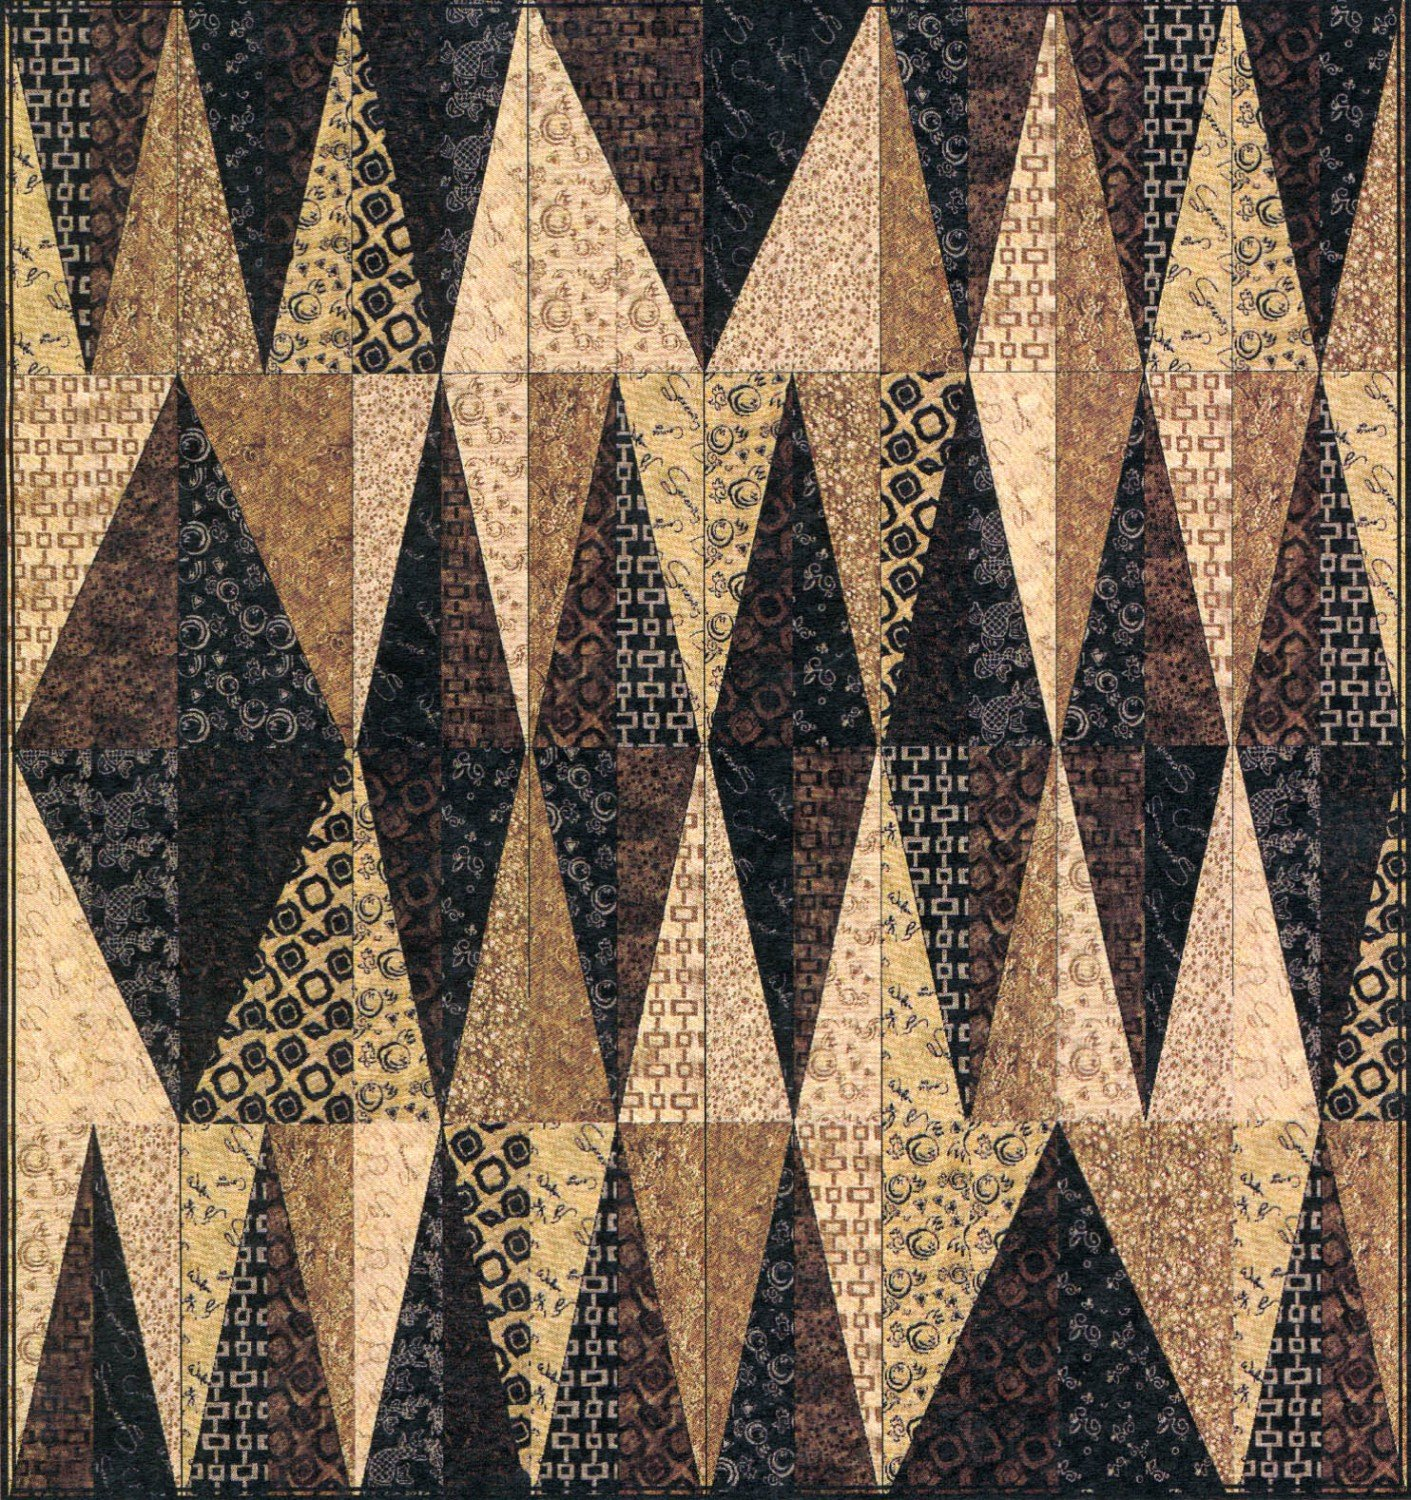 Wildcard Quilt Pattern- A Quilter's Dream